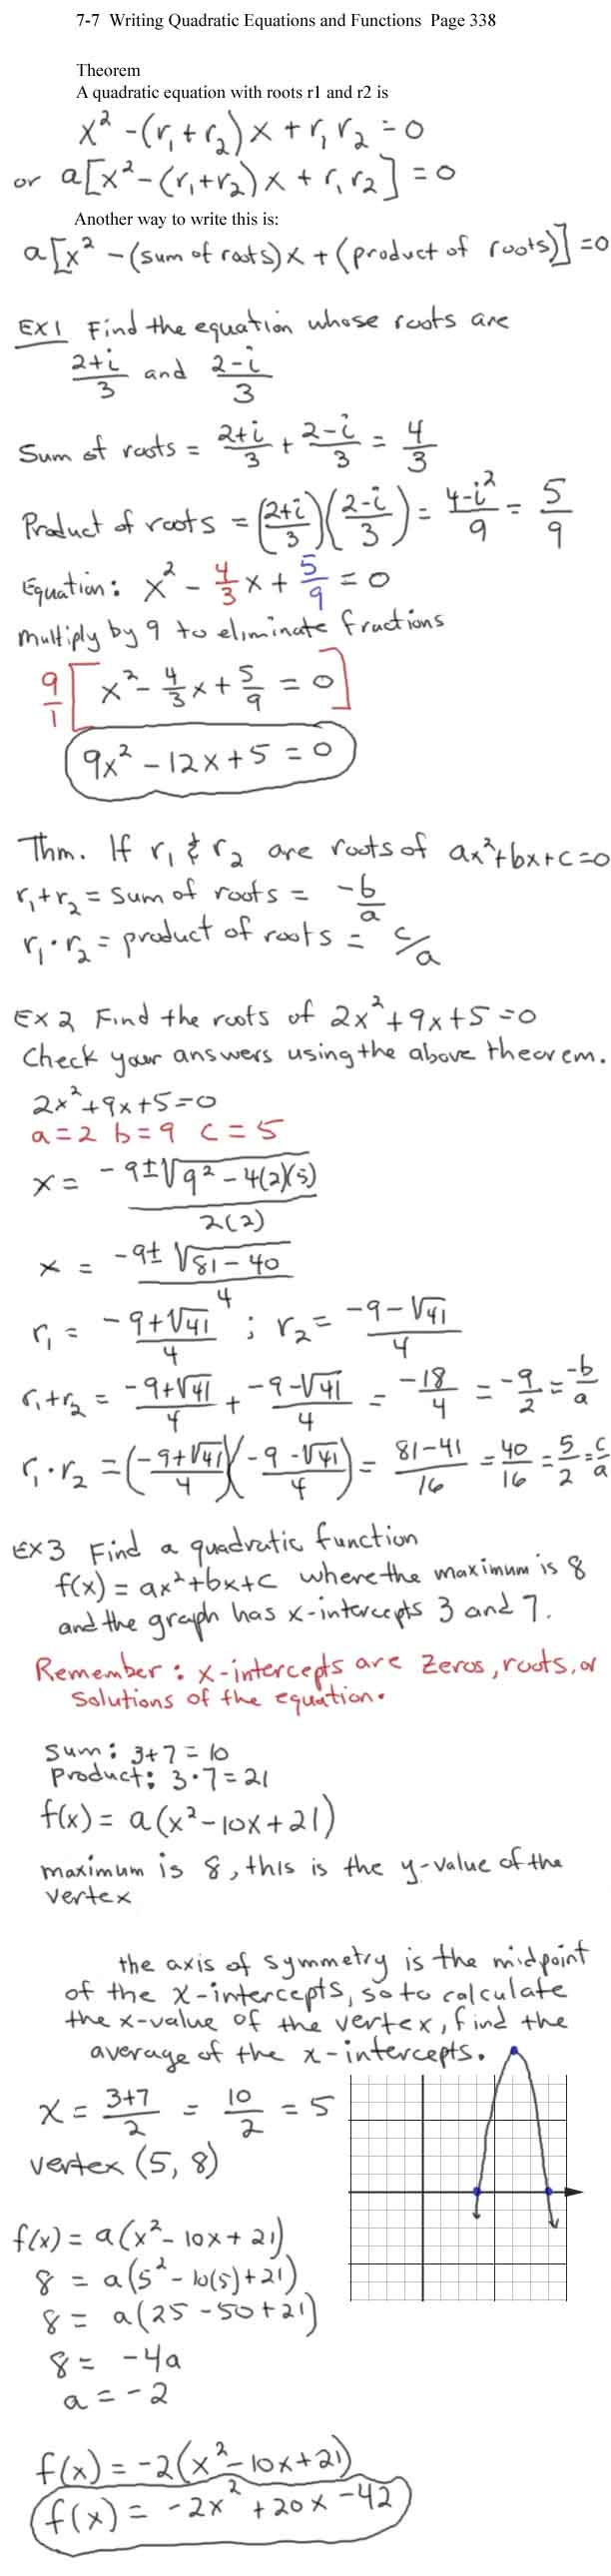 Lecture Notes – Kuta Software Infinite Algebra 1 Worksheet Answers